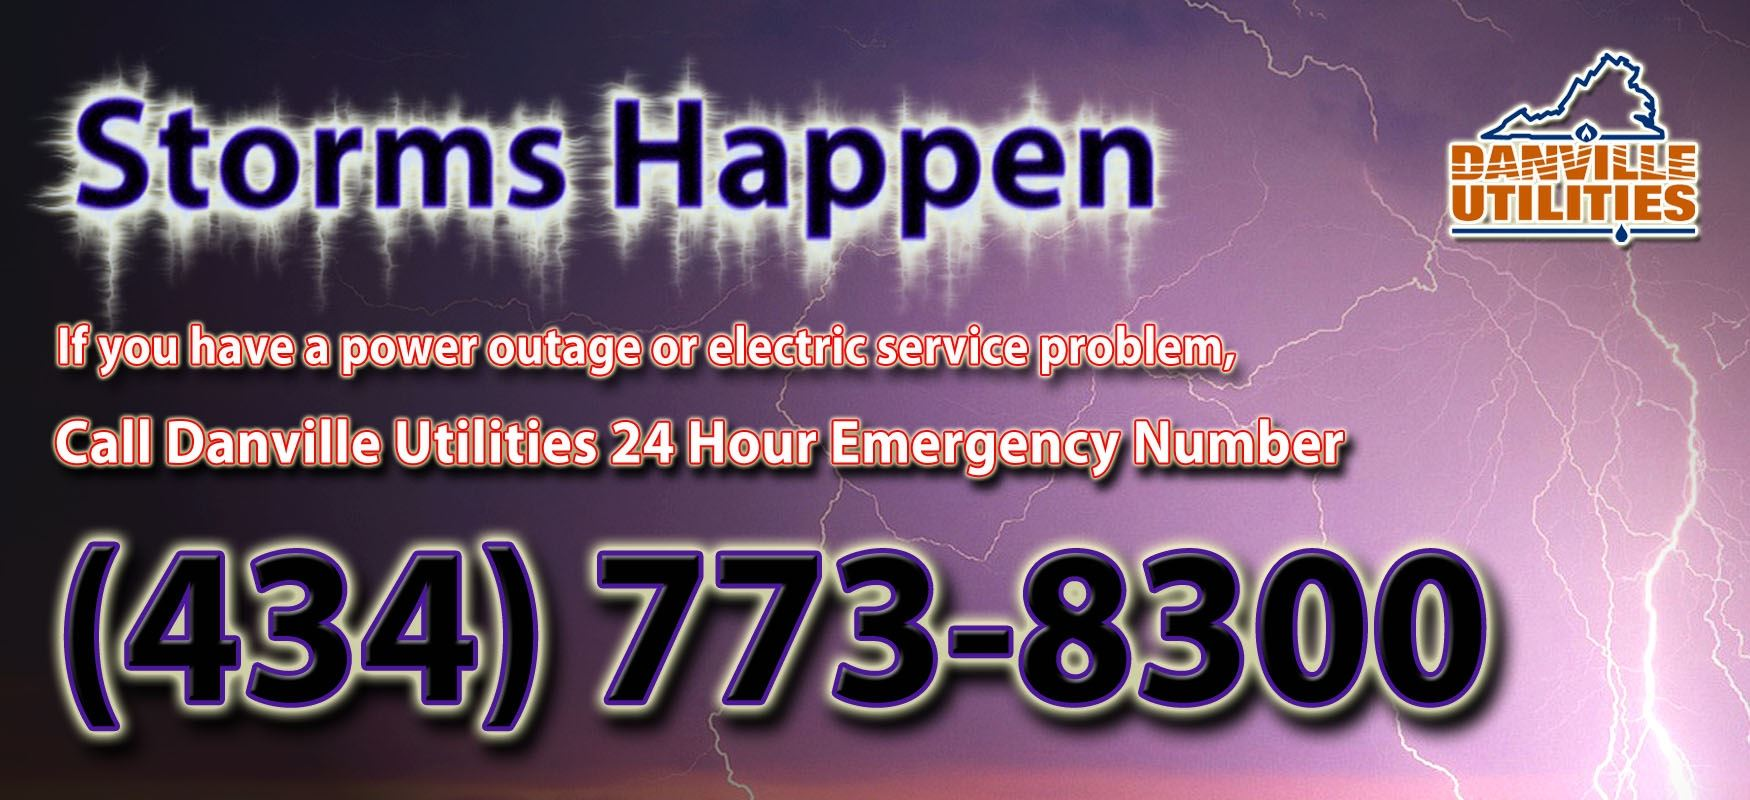 Storms happen graphic with 24-hour number emergency phone number